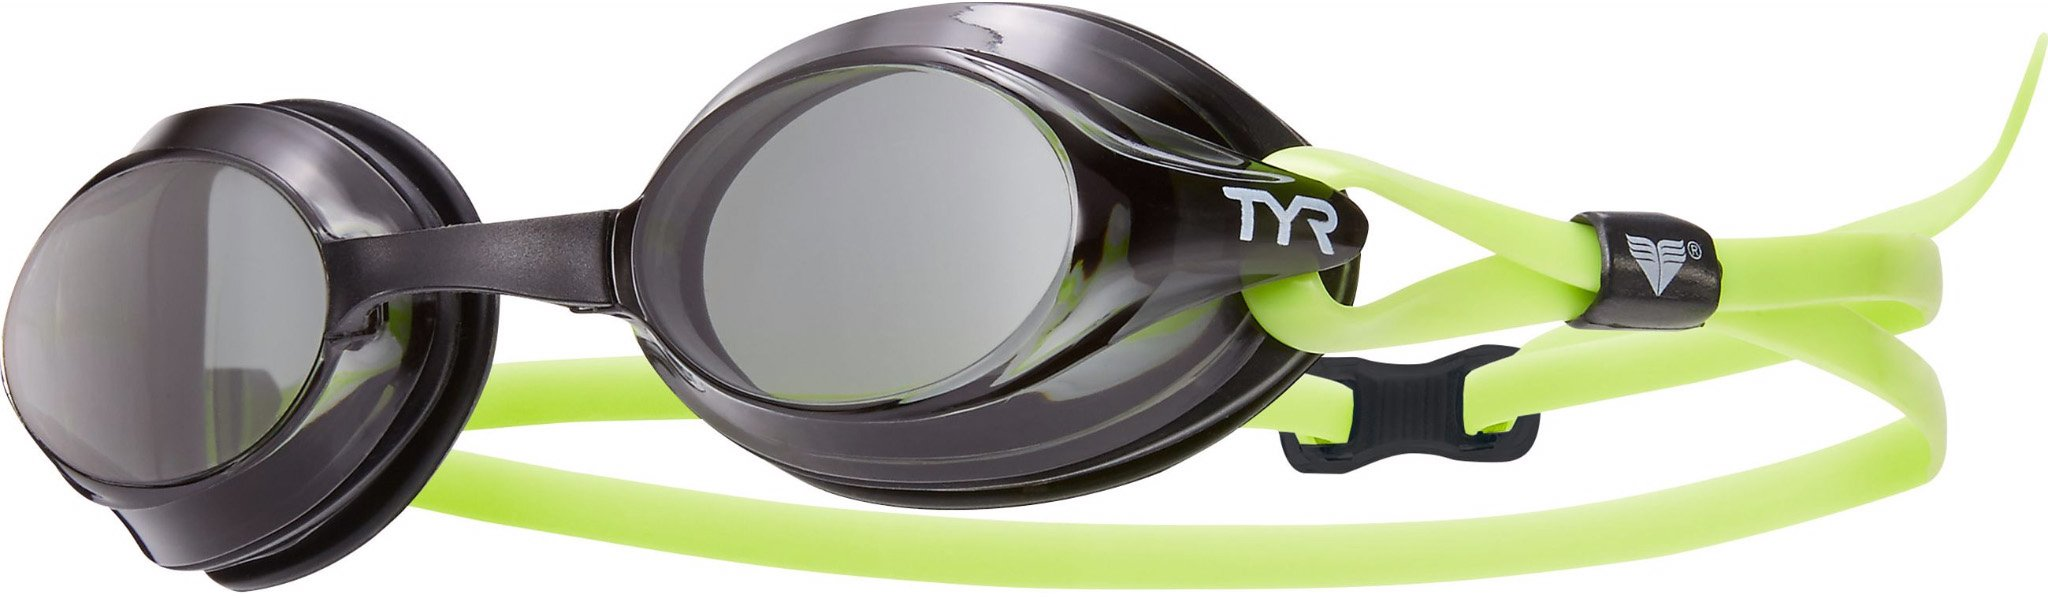 TYR Velocity Racing Goggles